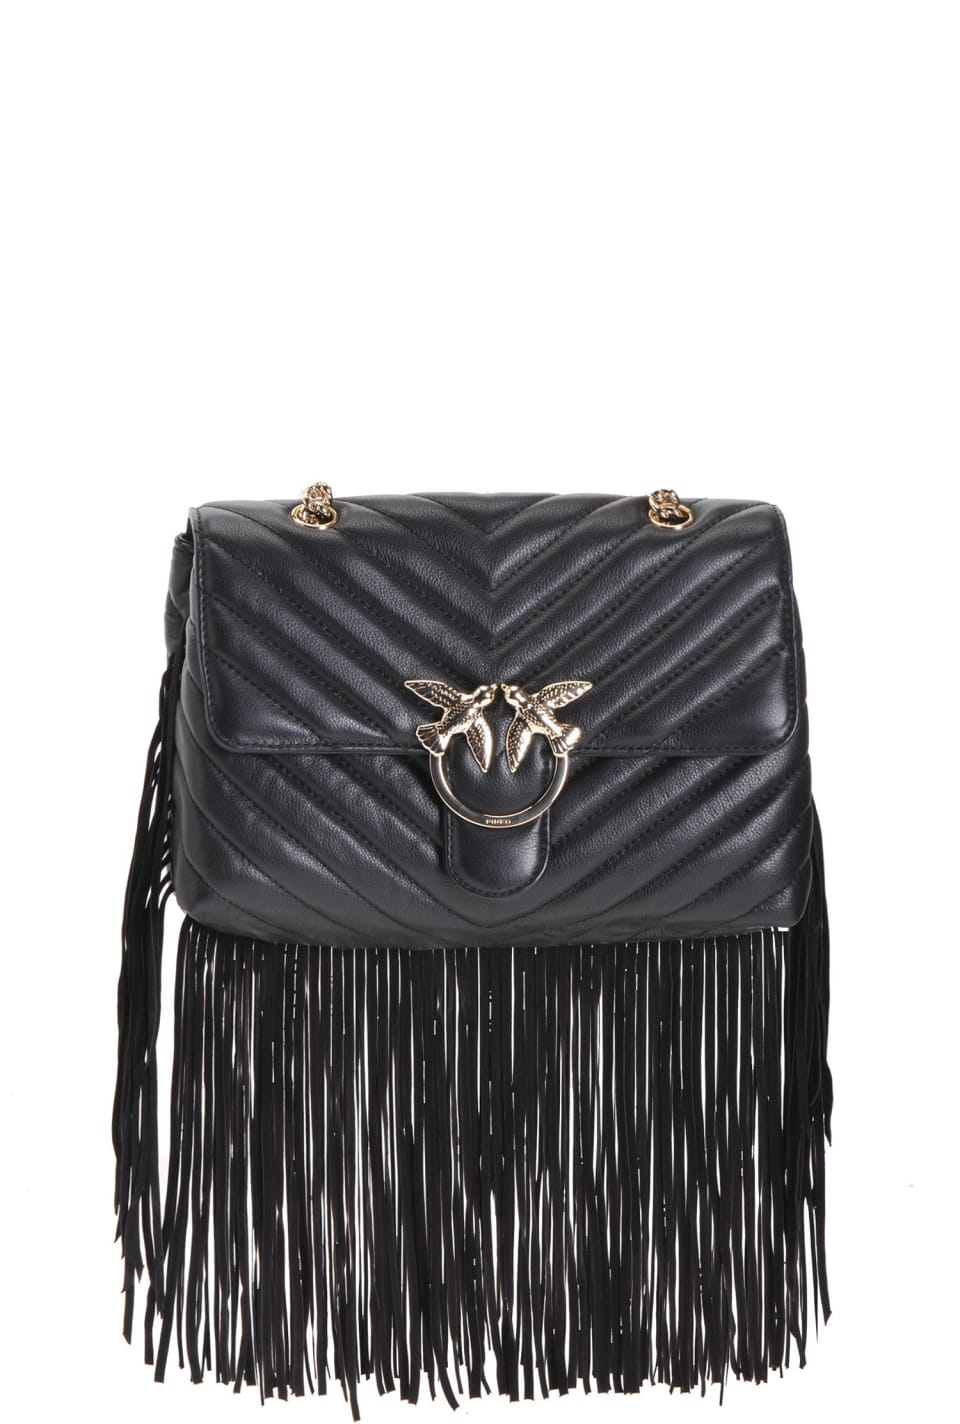 Love Bag Puff Fringes in nappa